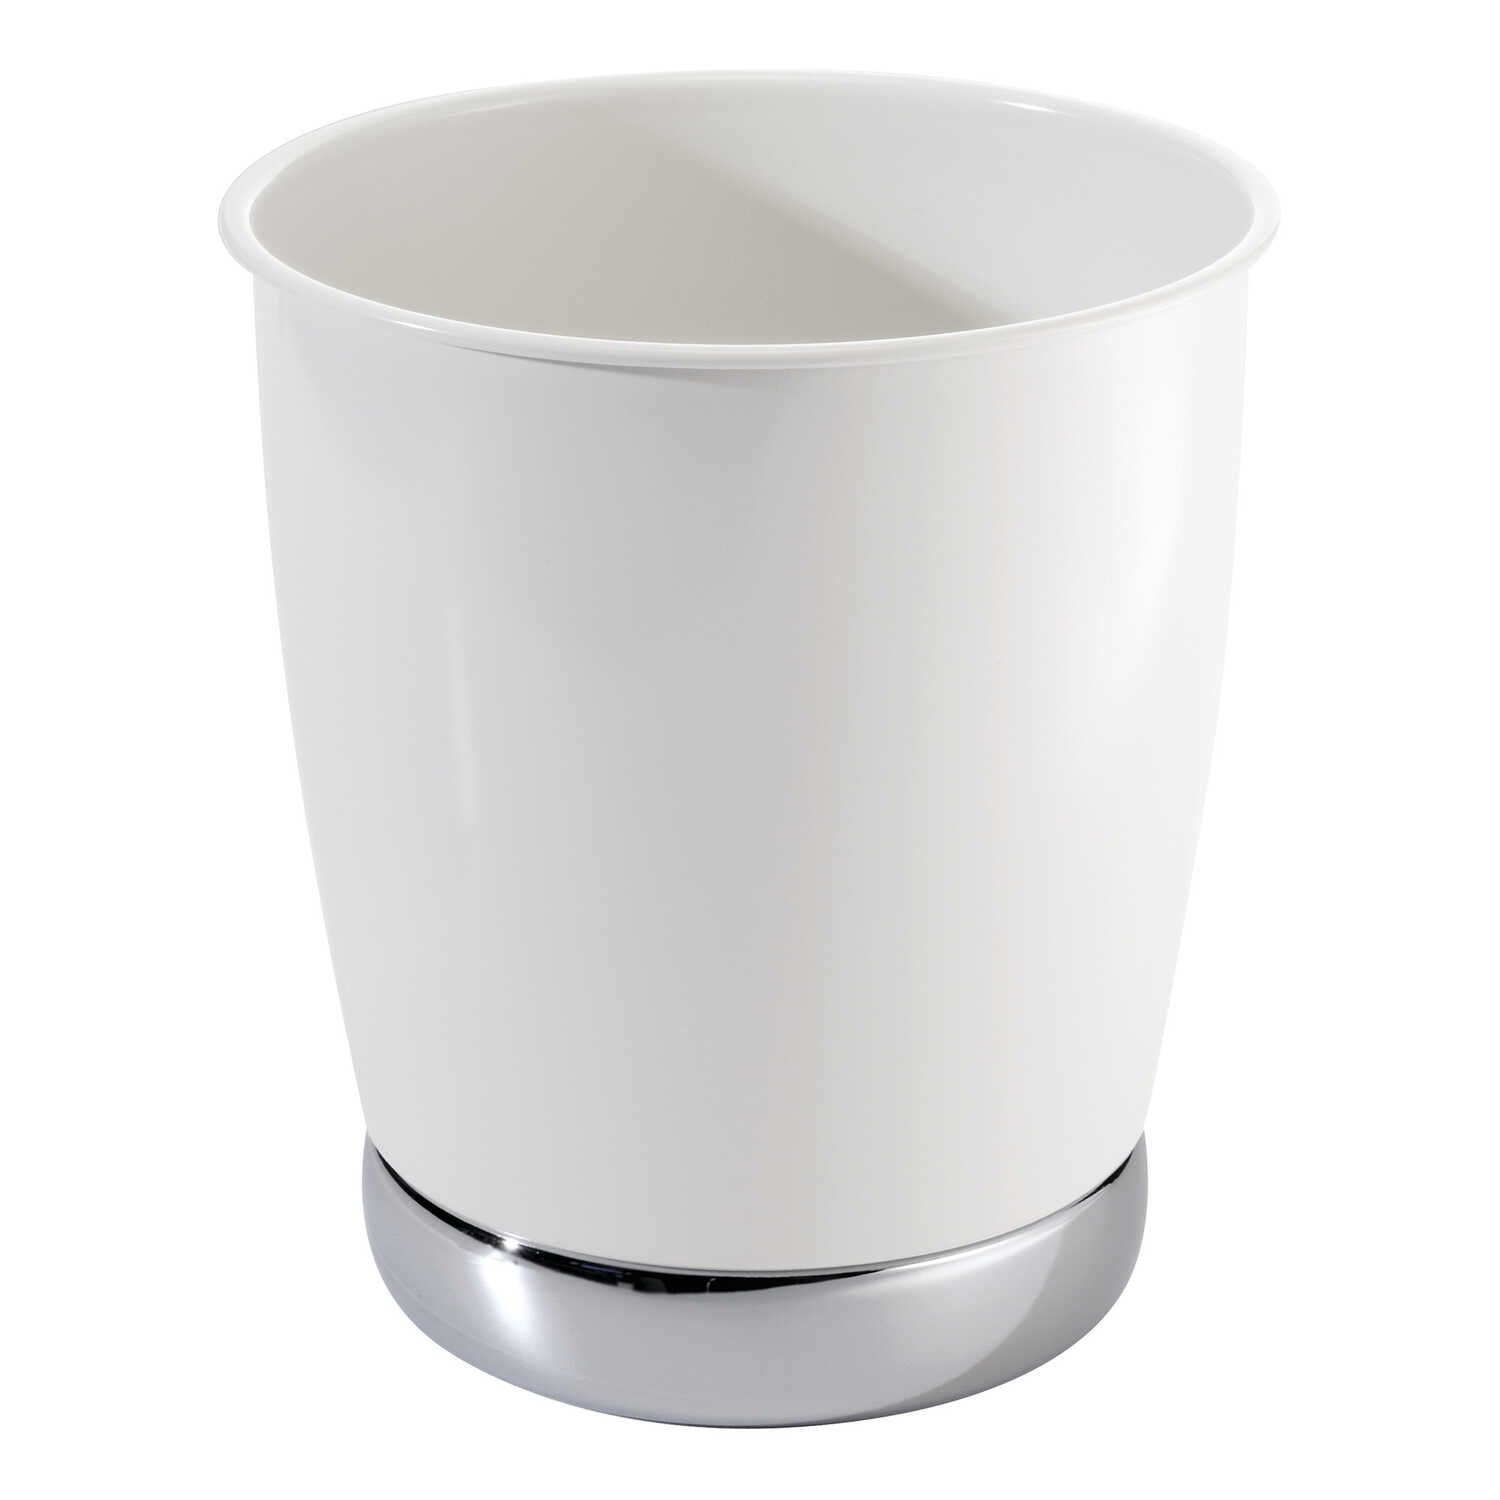 InterDesign  York  White  Classic American  Wastebasket